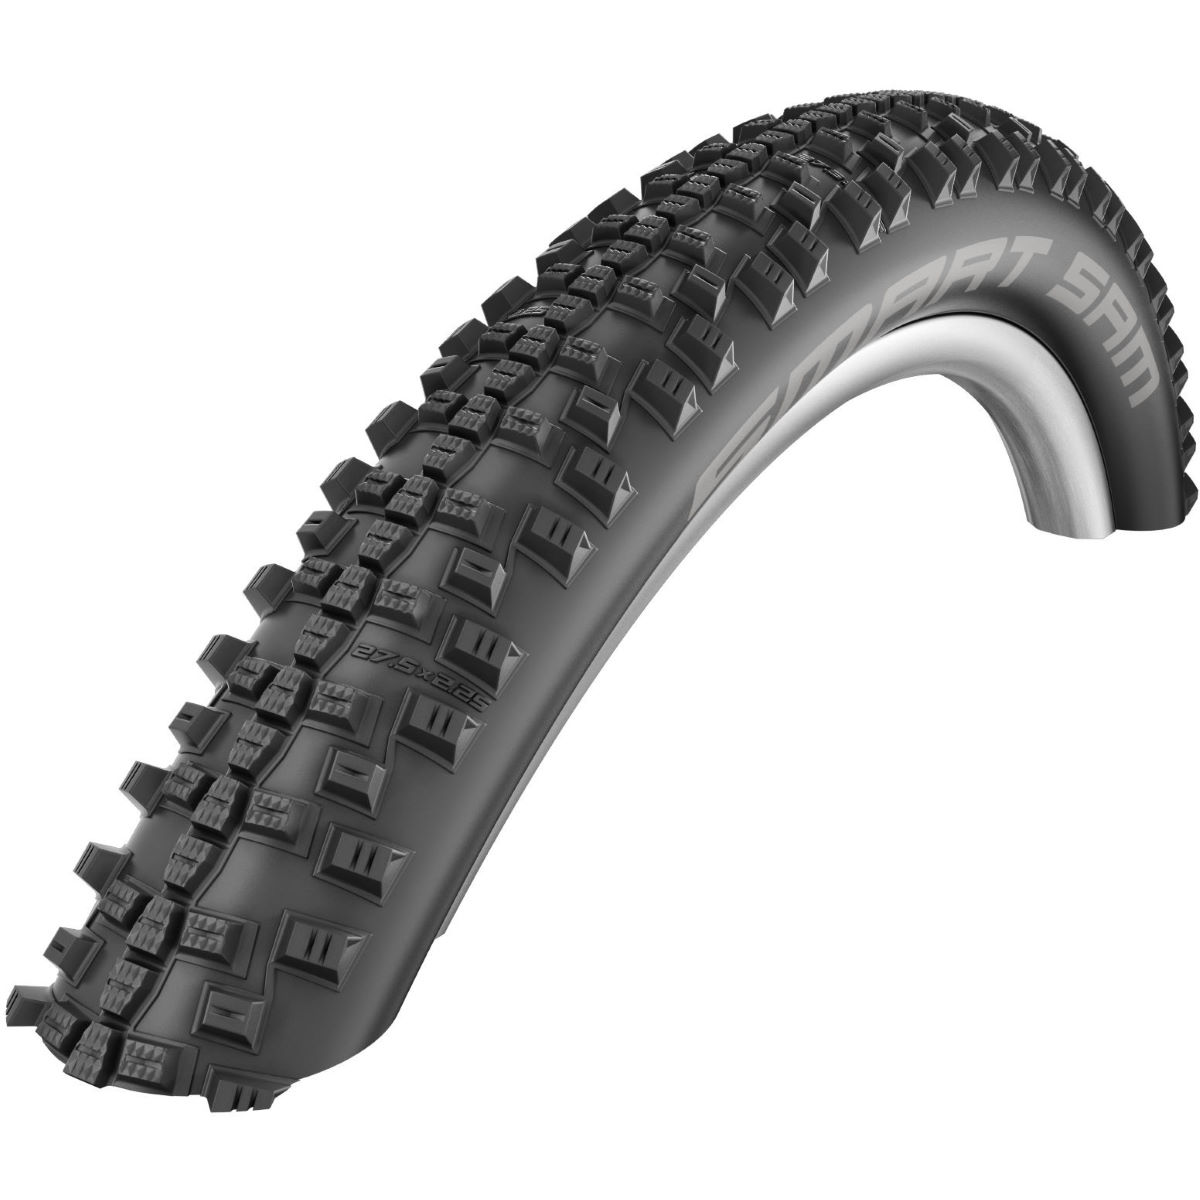 Pneu VTT Schwalbe Smart Sam Performance - 2.25' 27.5' Noir Pneus